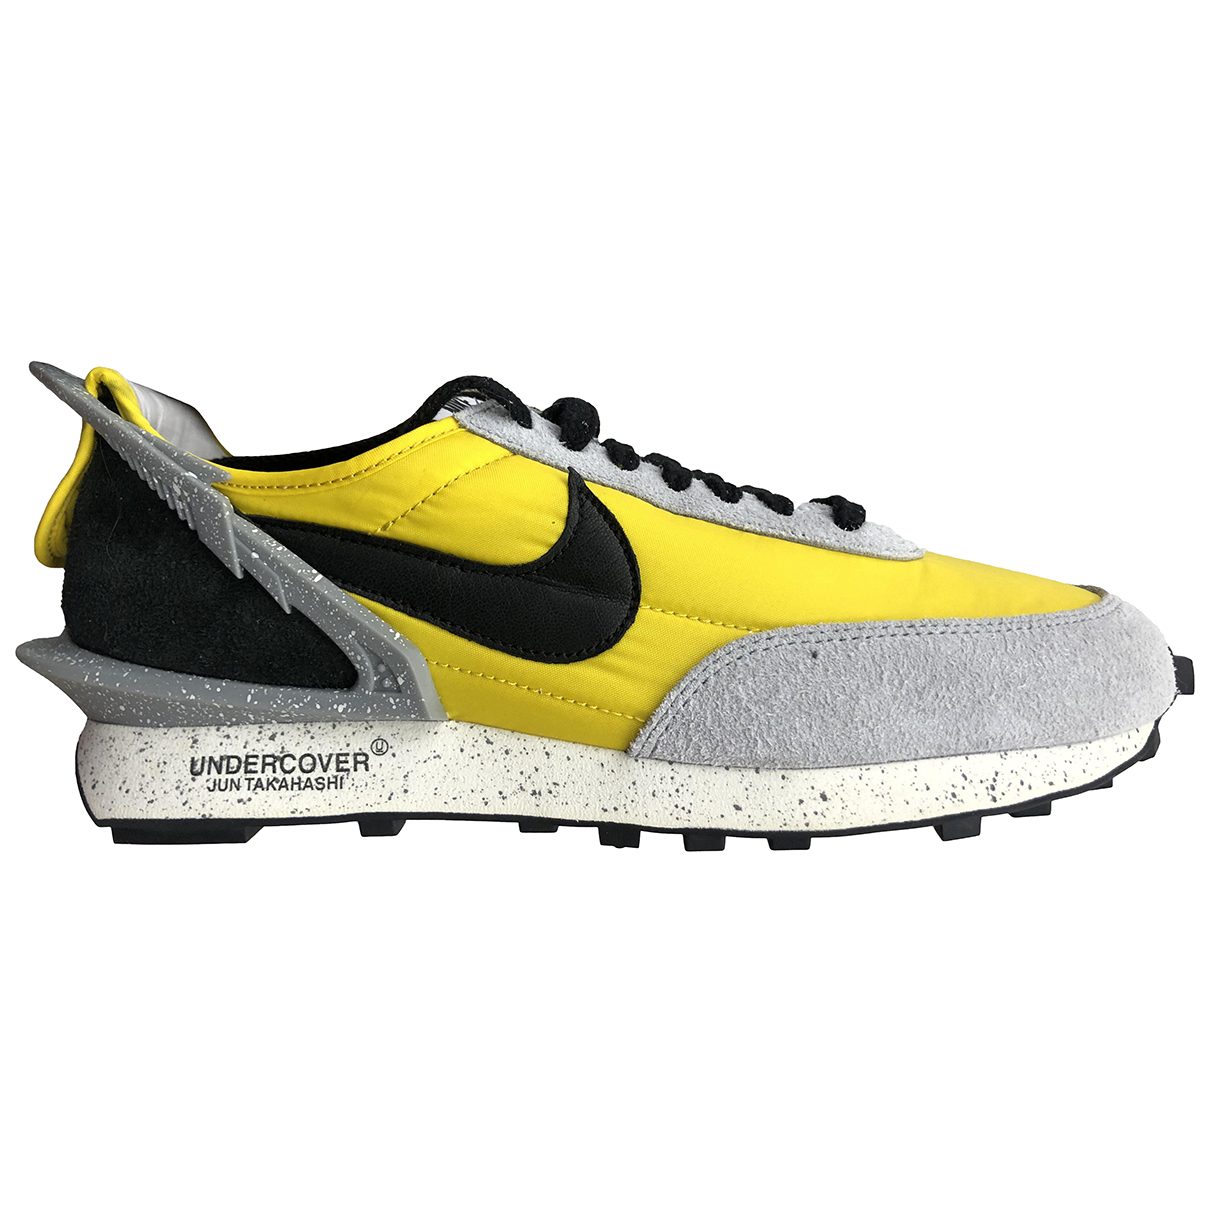 Nike X Undercover Daybreak Yellow Cloth Trainers for Men 45.5 EU